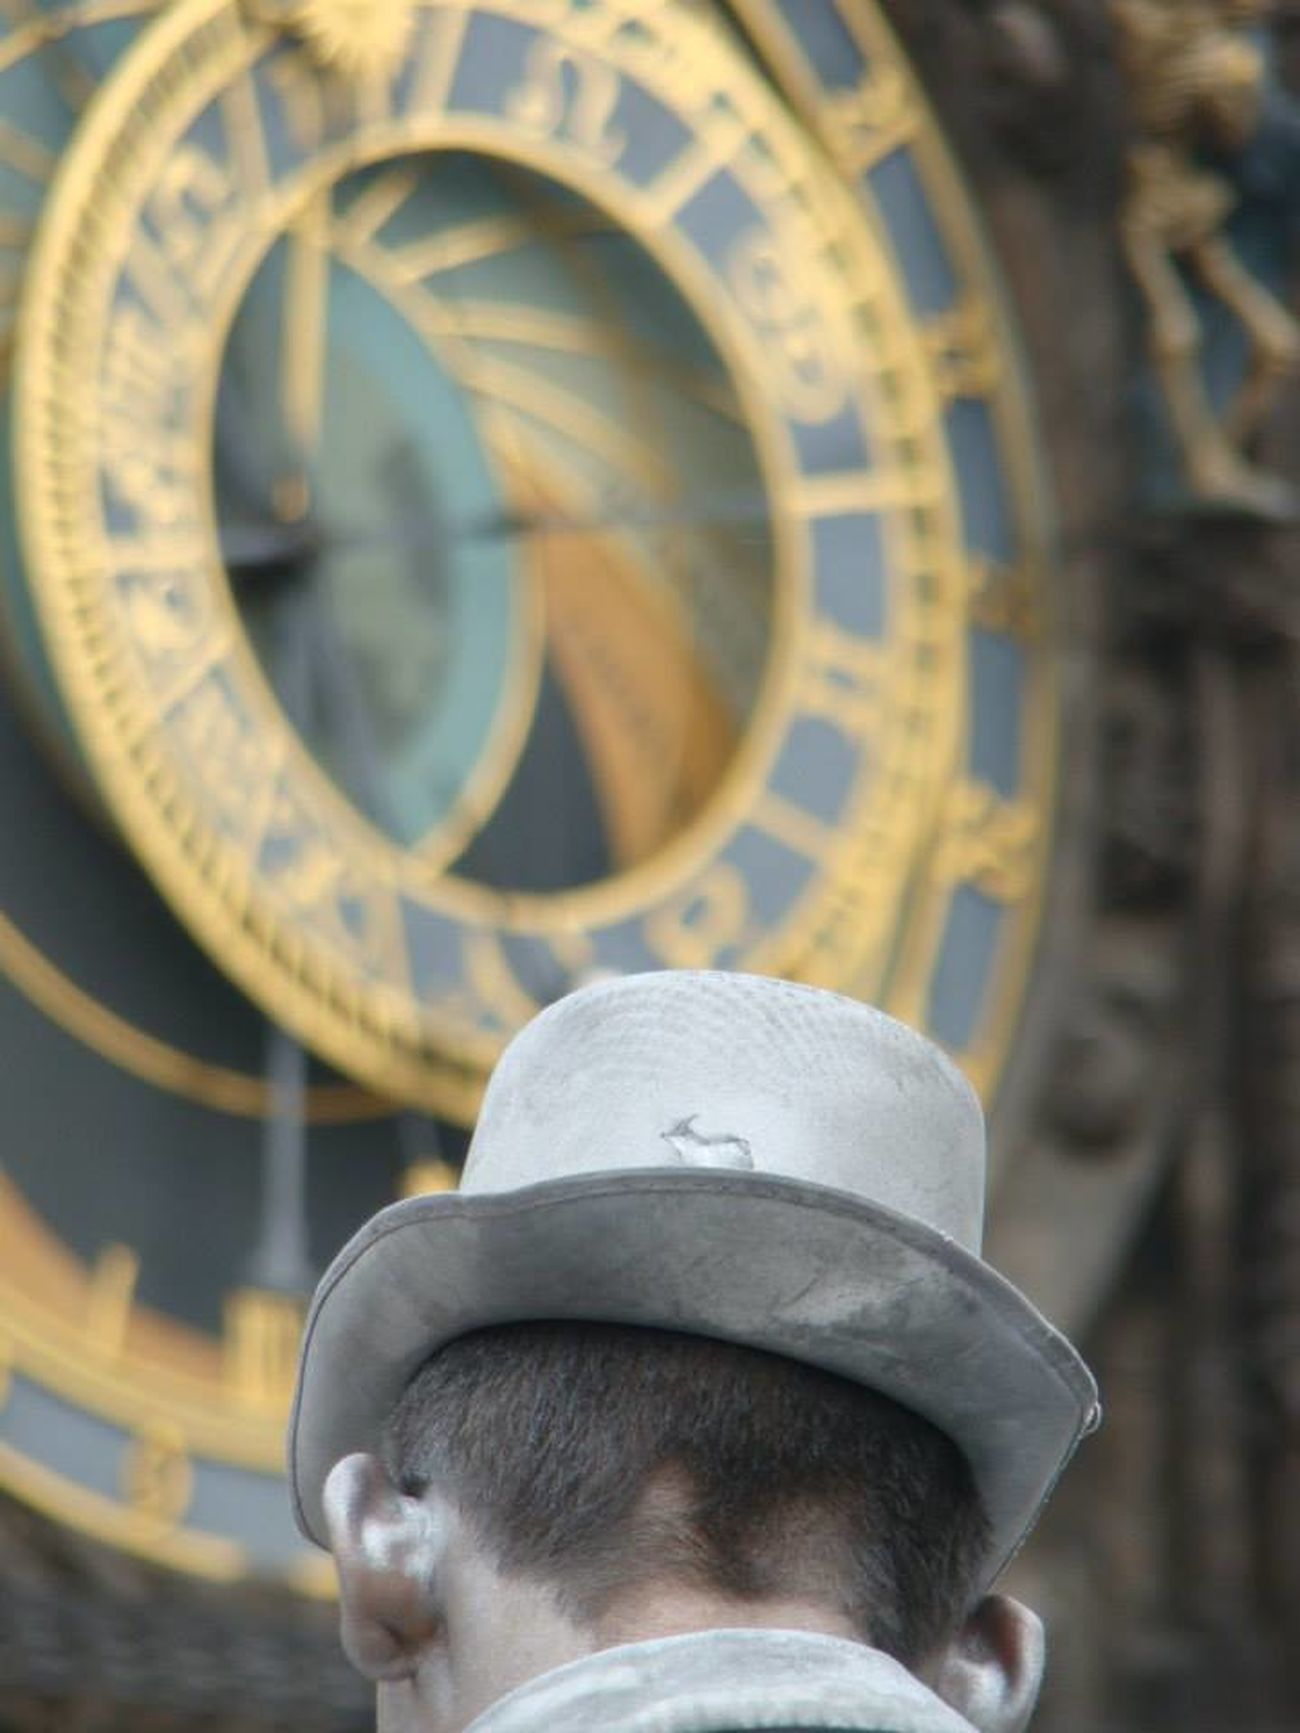 Prague Astronomicalclock Praga Streetphotography Street Artist Summer In Europe